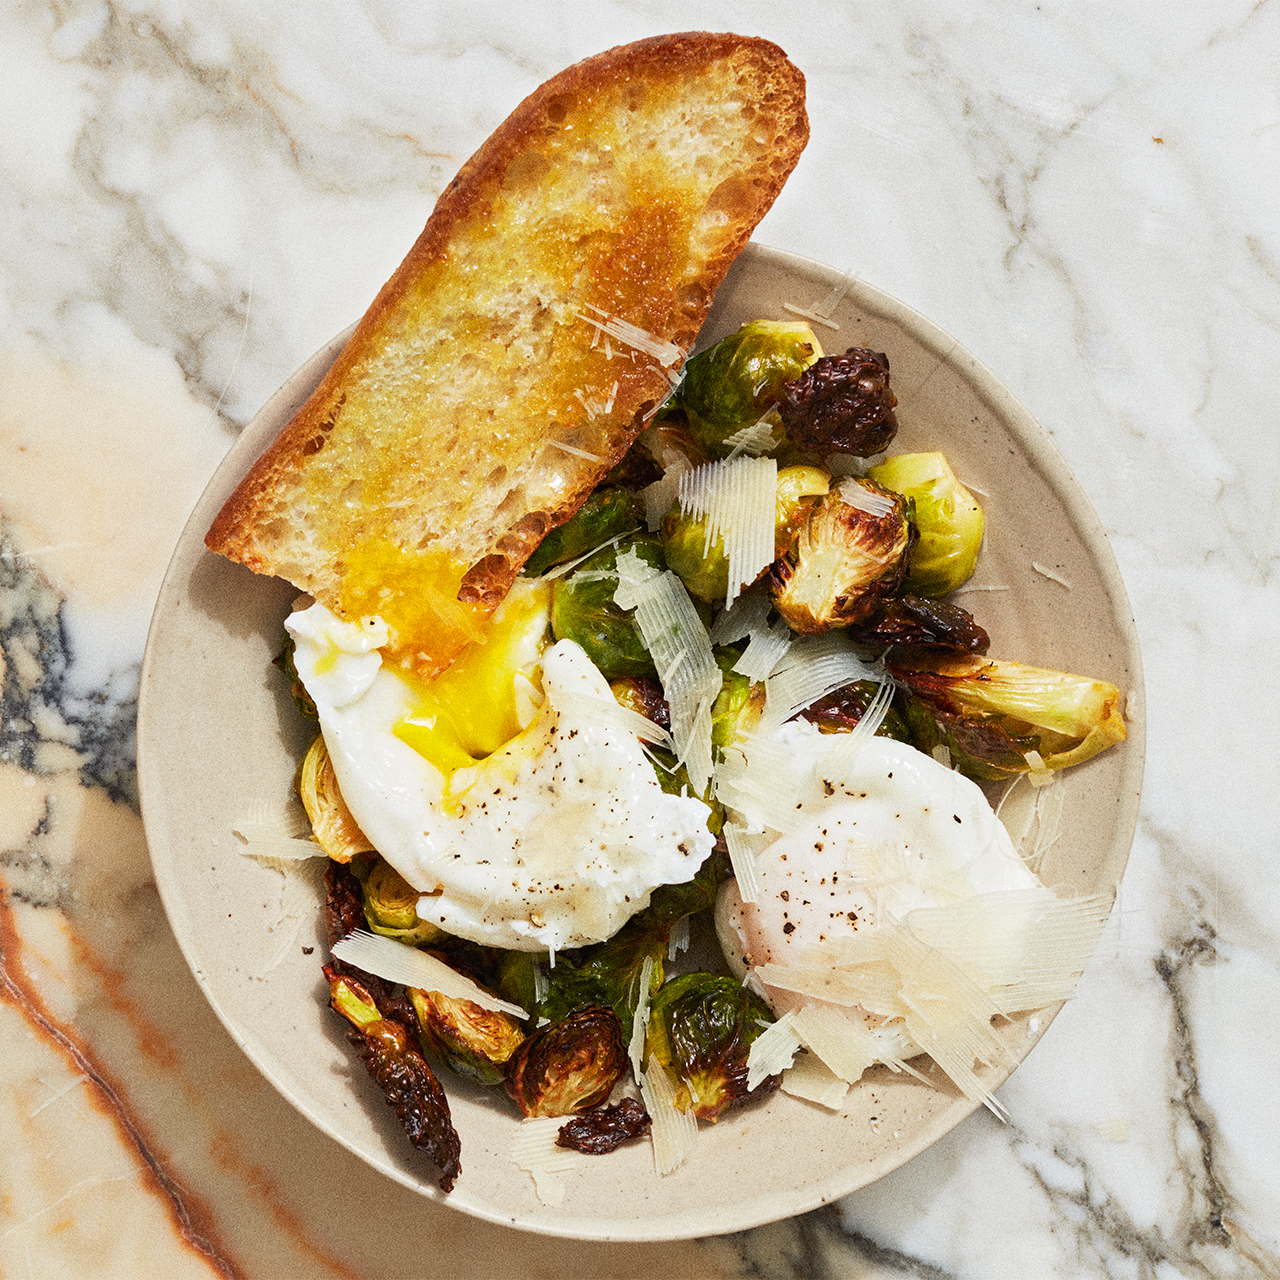 Roasted Brussels Sprouts with Poached Egg and Parmesan